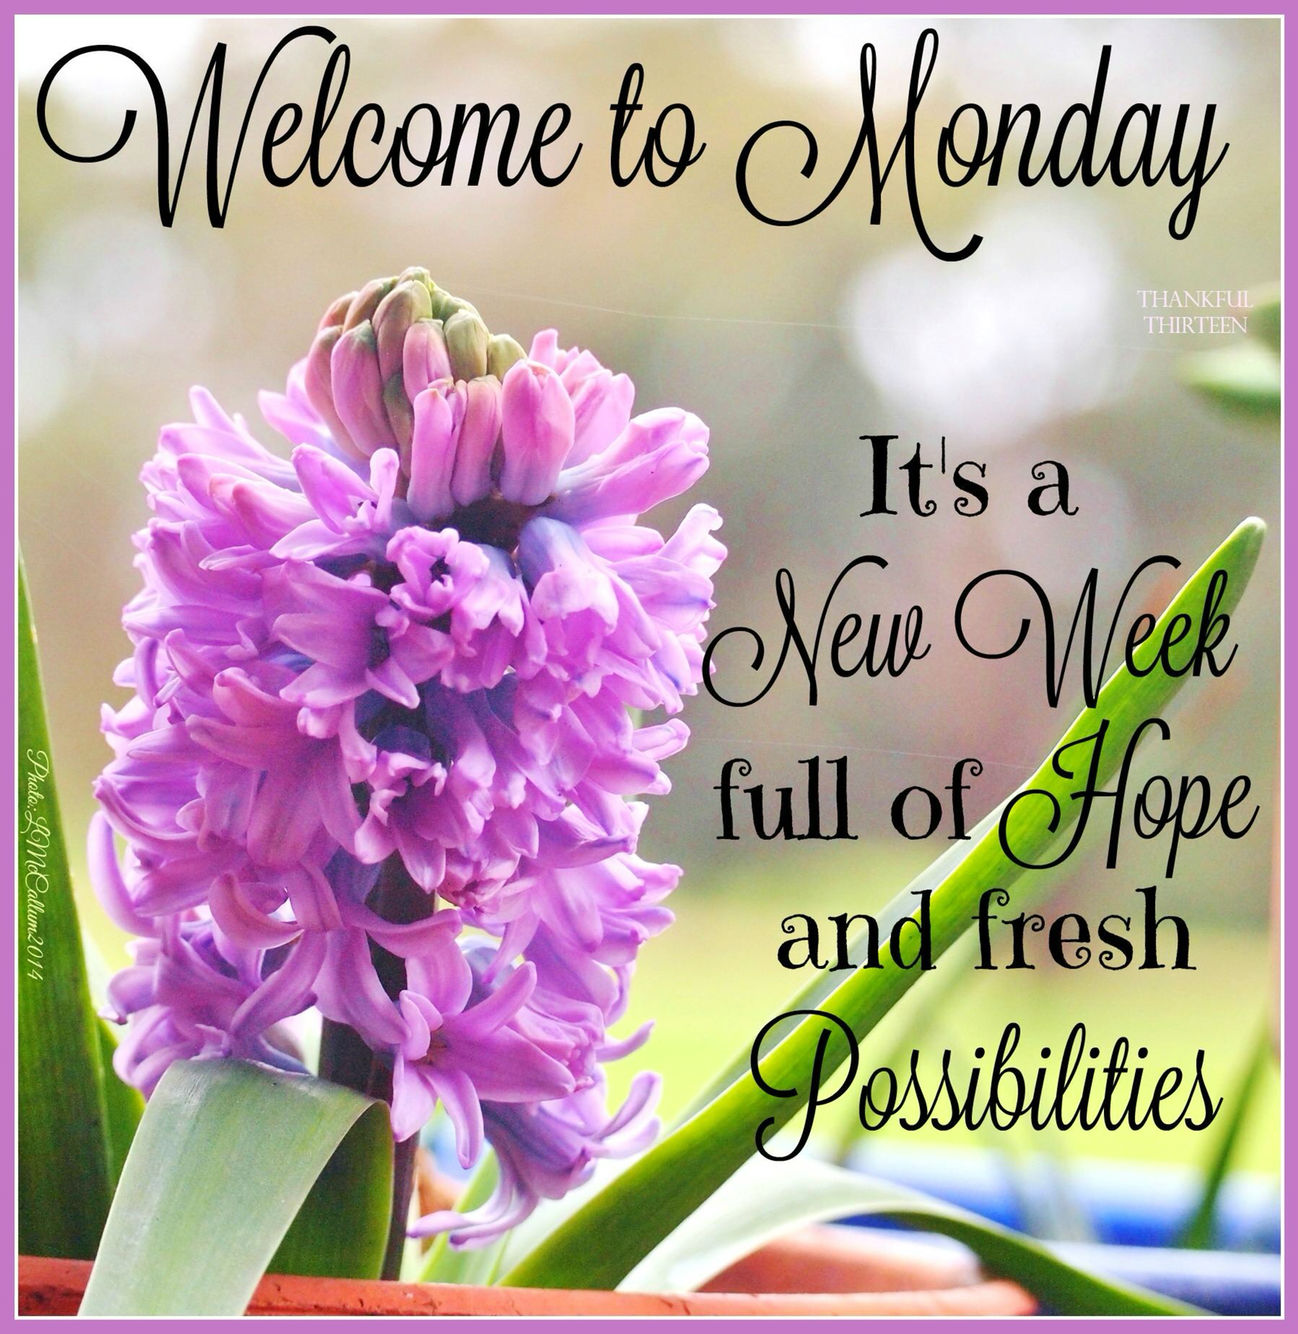 Good Morning Monday Quotes Welcome To Monday Its A New Week Pictures Photos And Images For